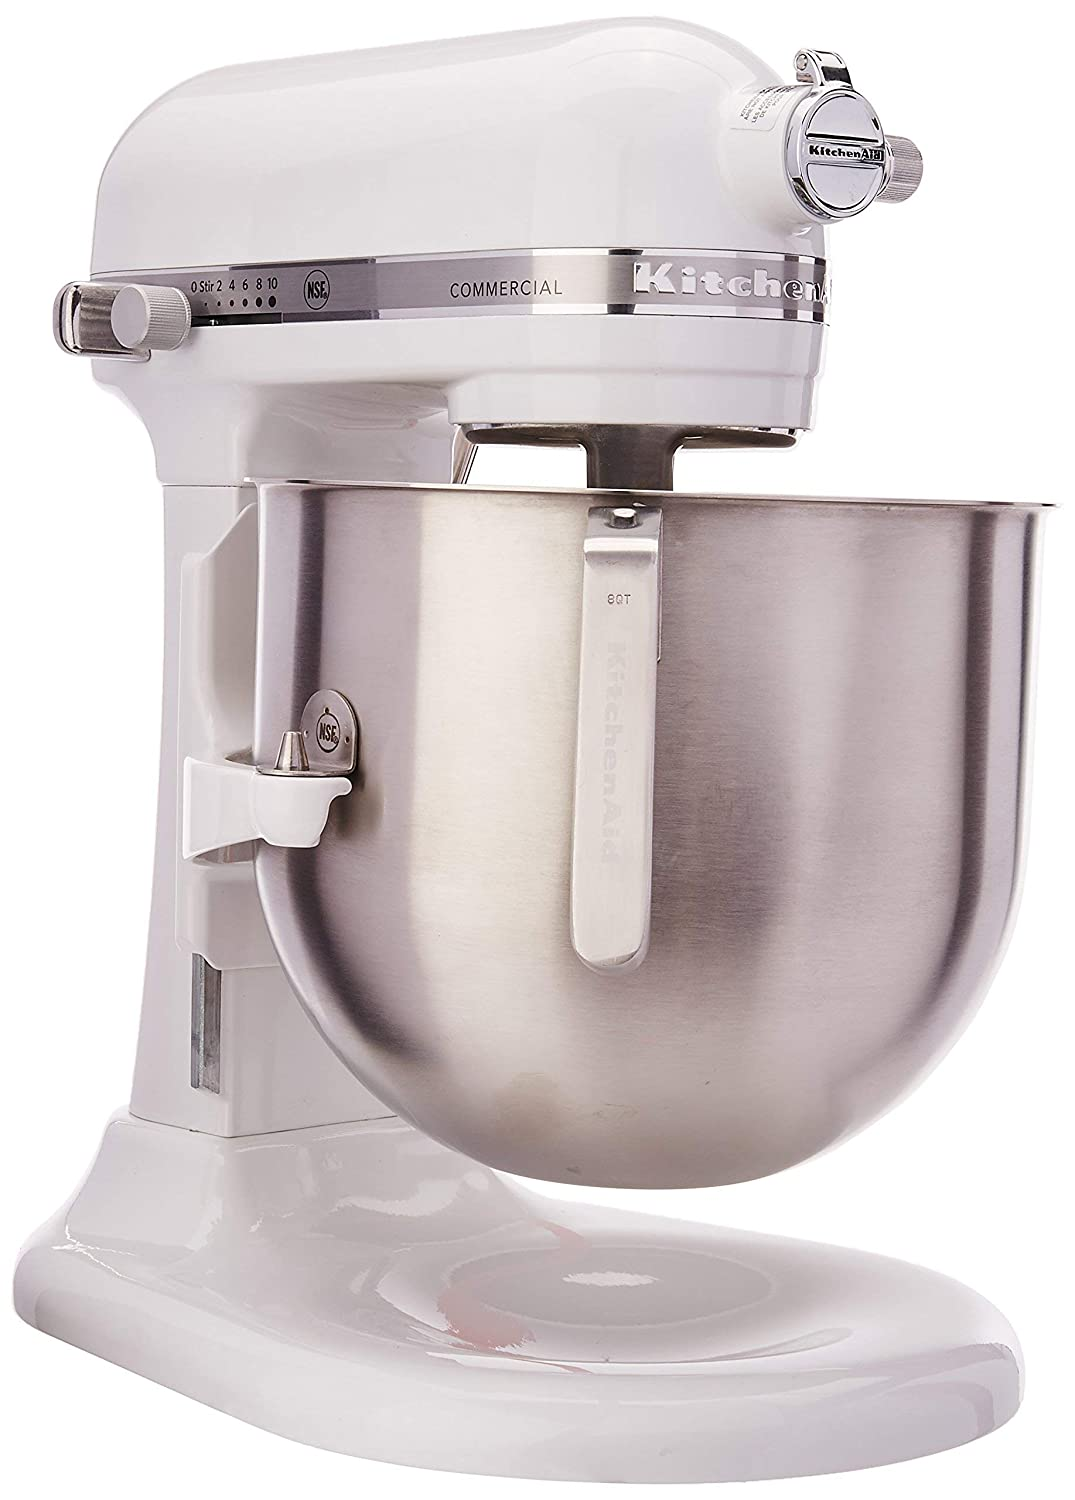 KitchenAid KSM8990WH 8-Quart Commercial Countertop Mixer, 10-Speed, Gear-Driven, White (Certified Refurbished)